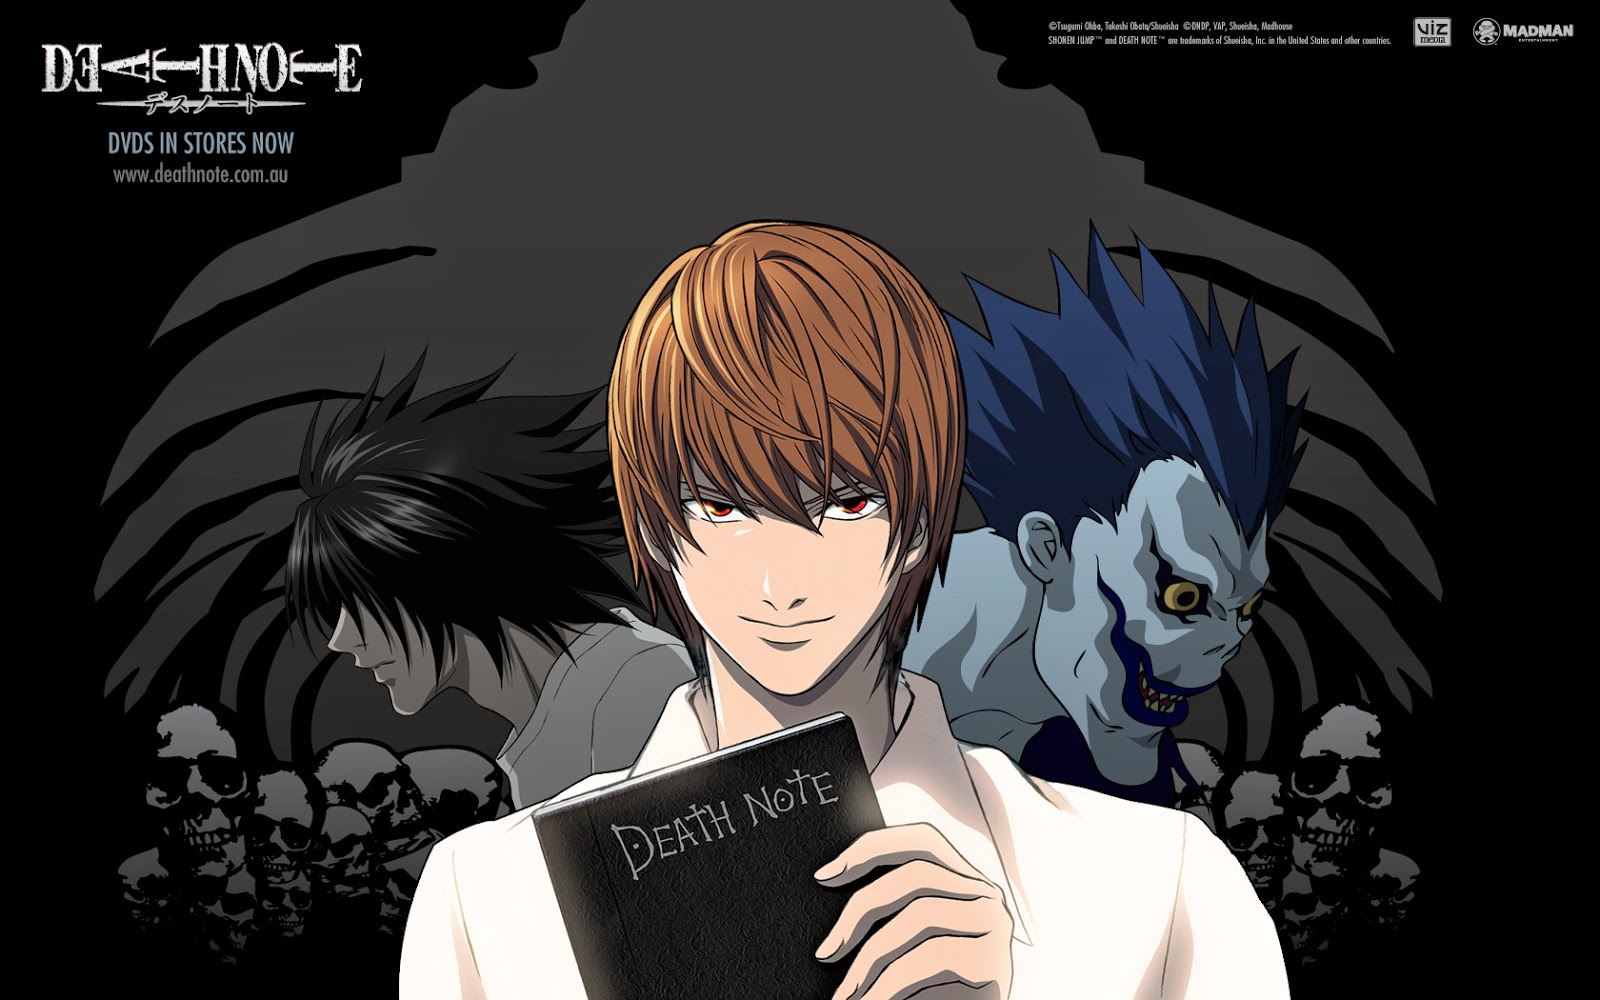 Light Yagami from Death Note